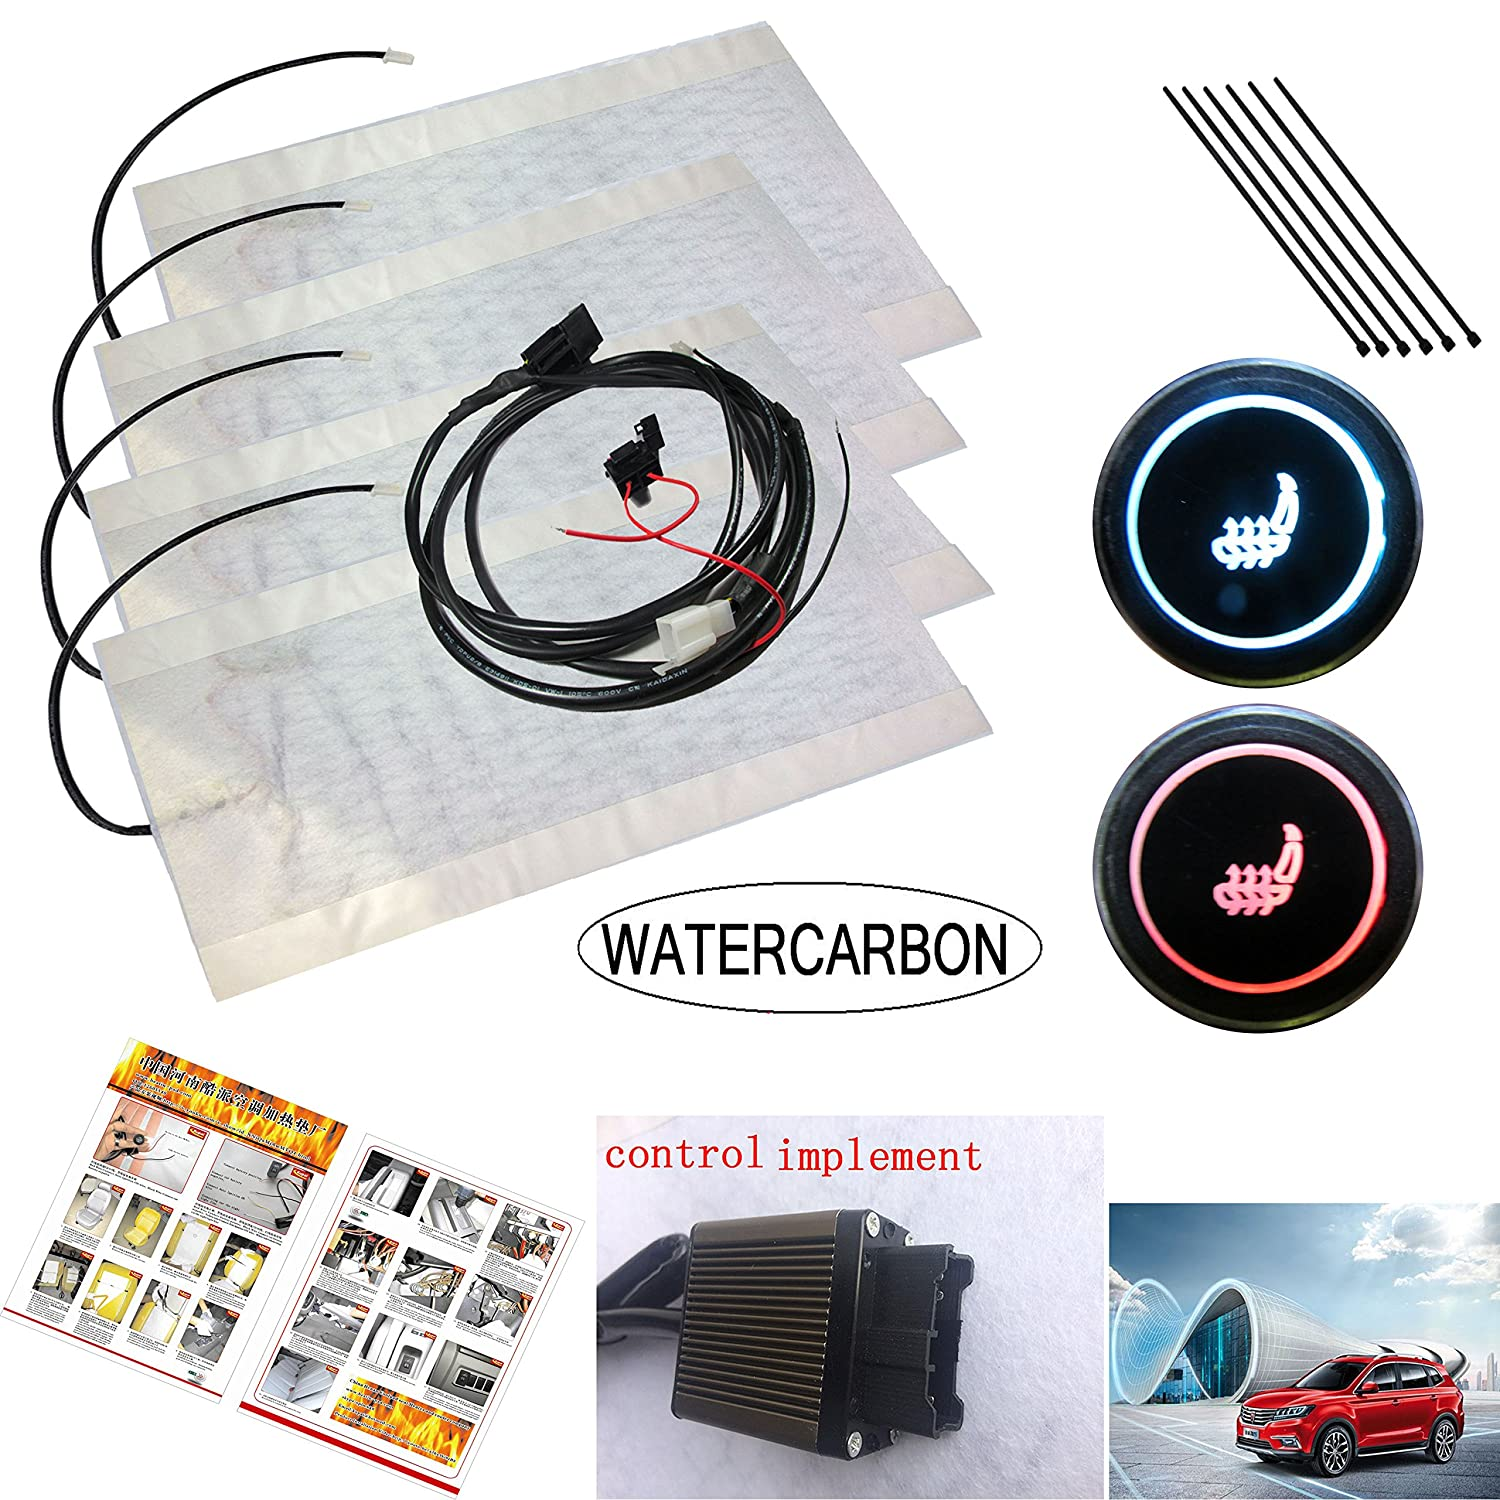 Health Care and Health Care Carbon Fiber Winter Car Heated Seat Cushion Cover Round 3 Gear 4 Color Heating Switch 12V Heating Heater Warmer Pad Auto Parts Installation WATERCARBON WATERCARBON 10-126